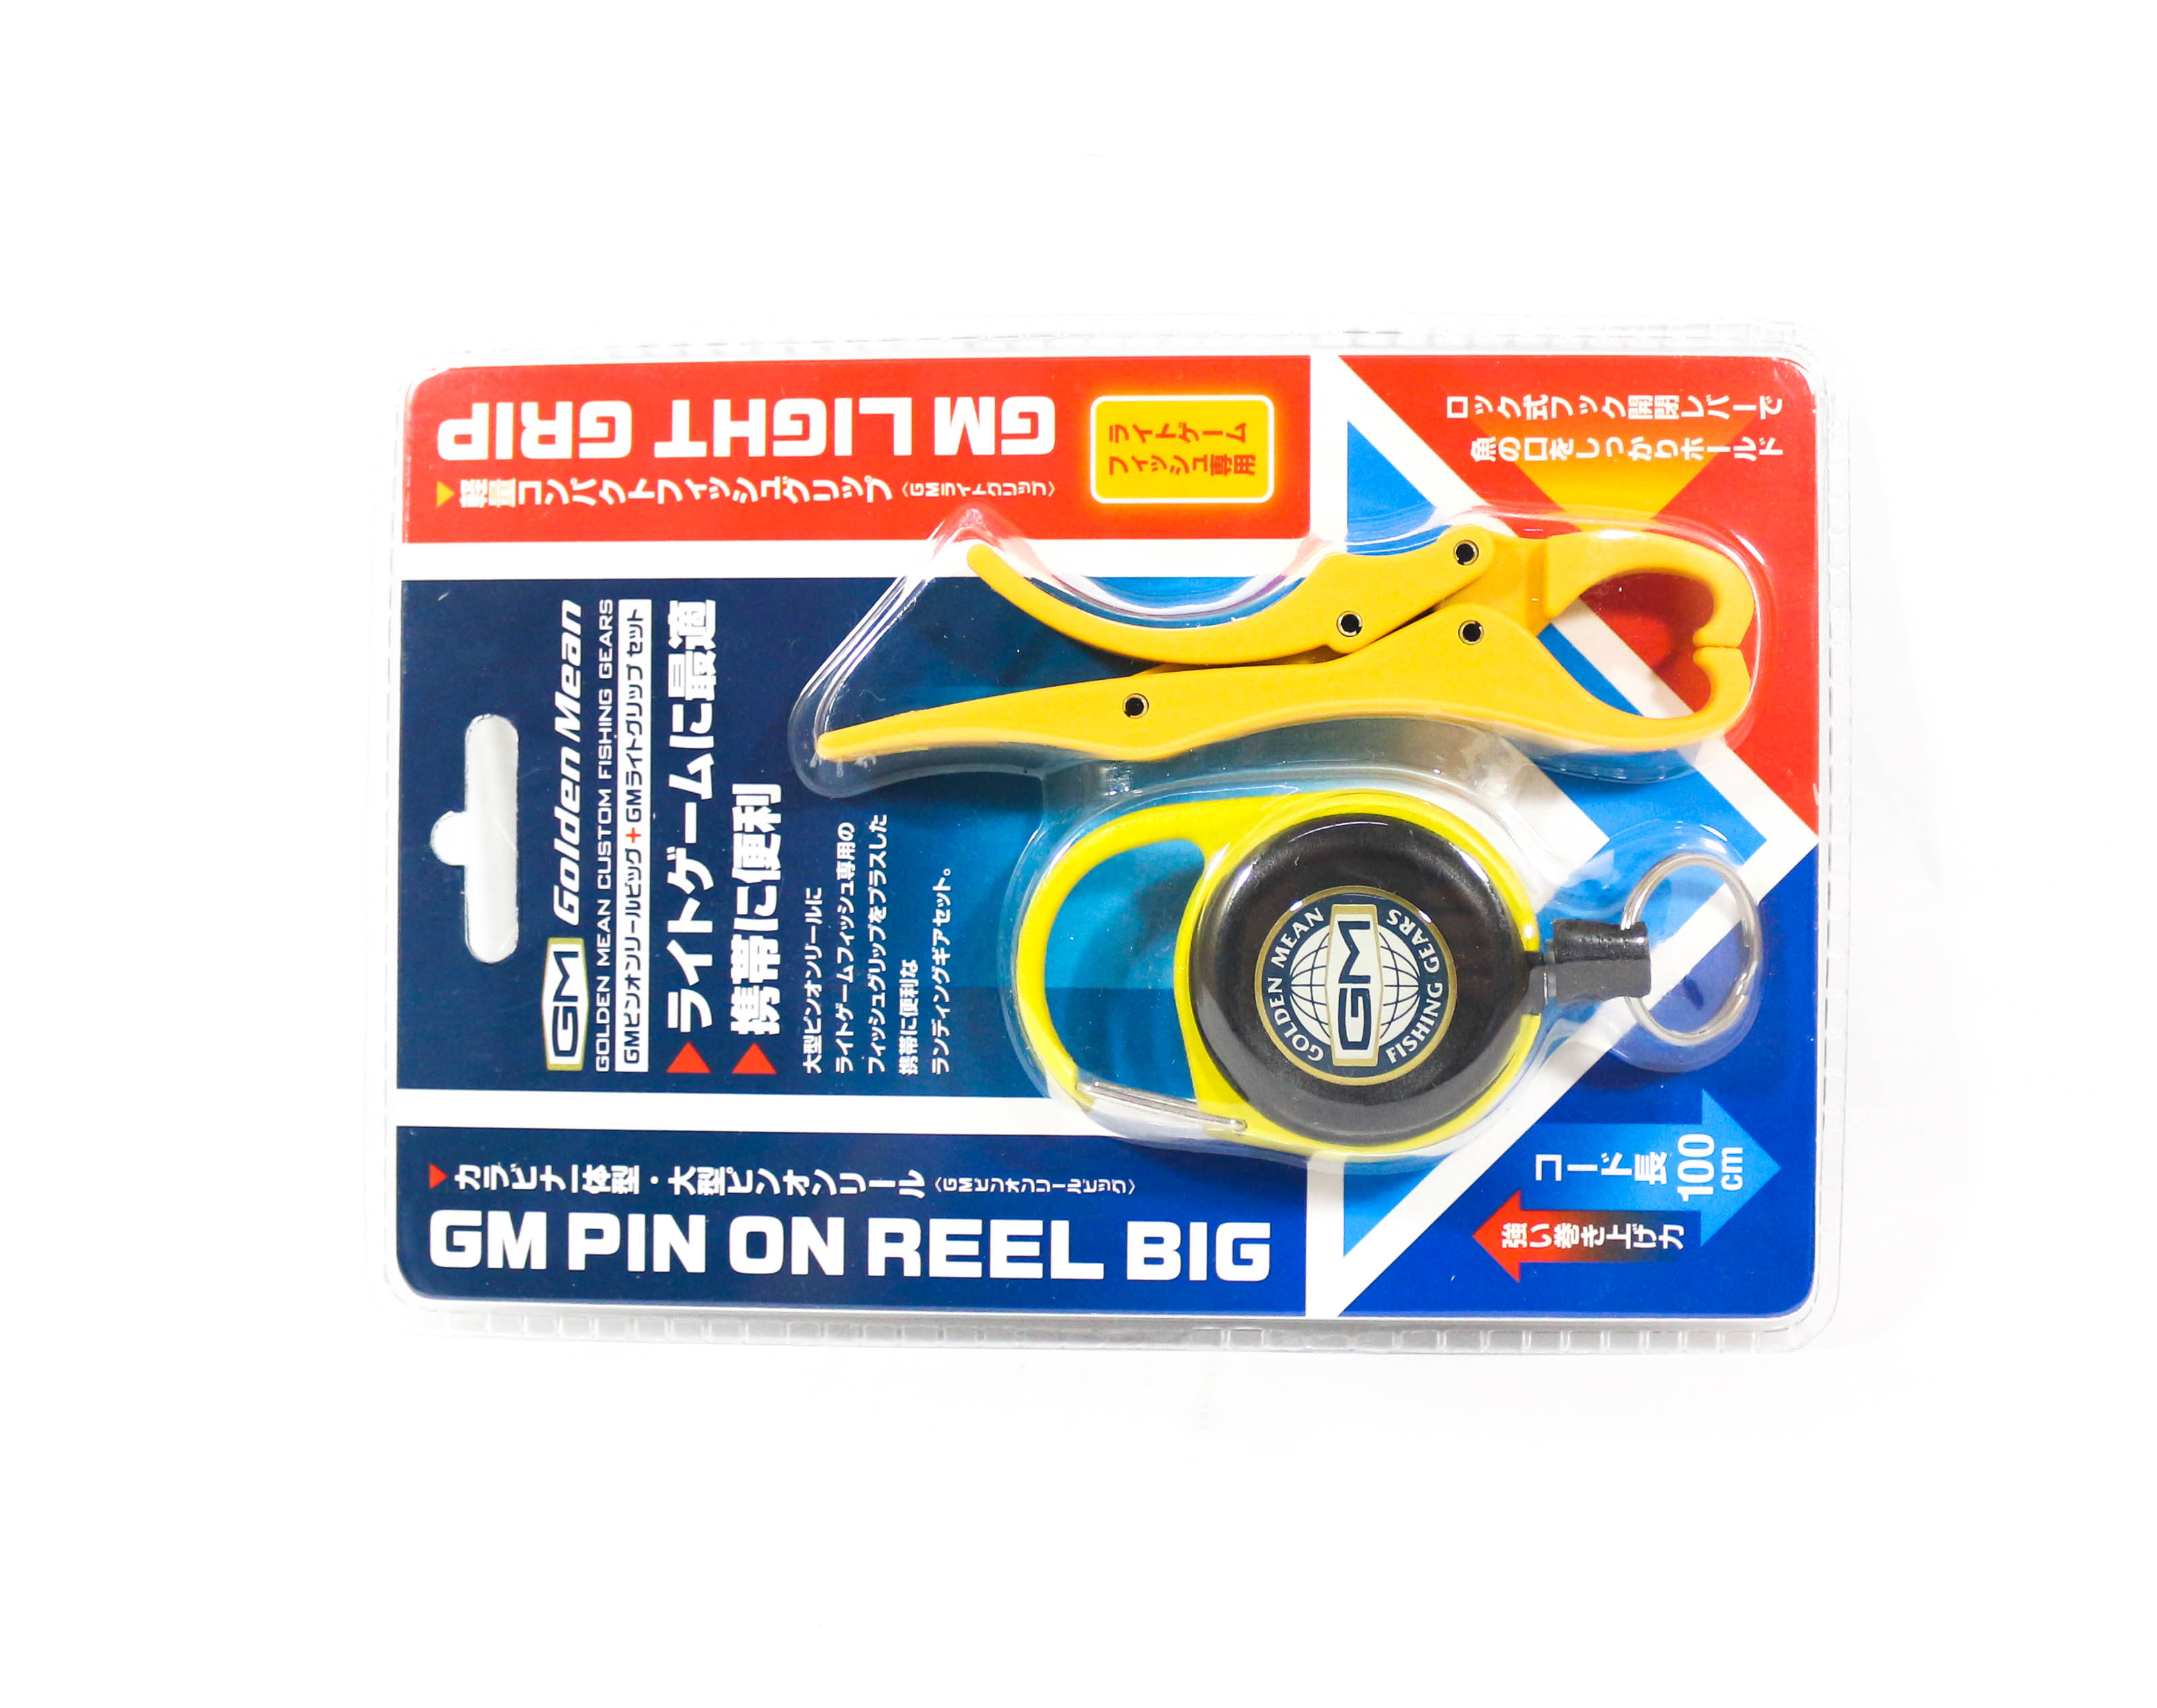 Golden Mean GM Pin on Reel Big Carabina 100cm with Light Grip Yellow (6242)